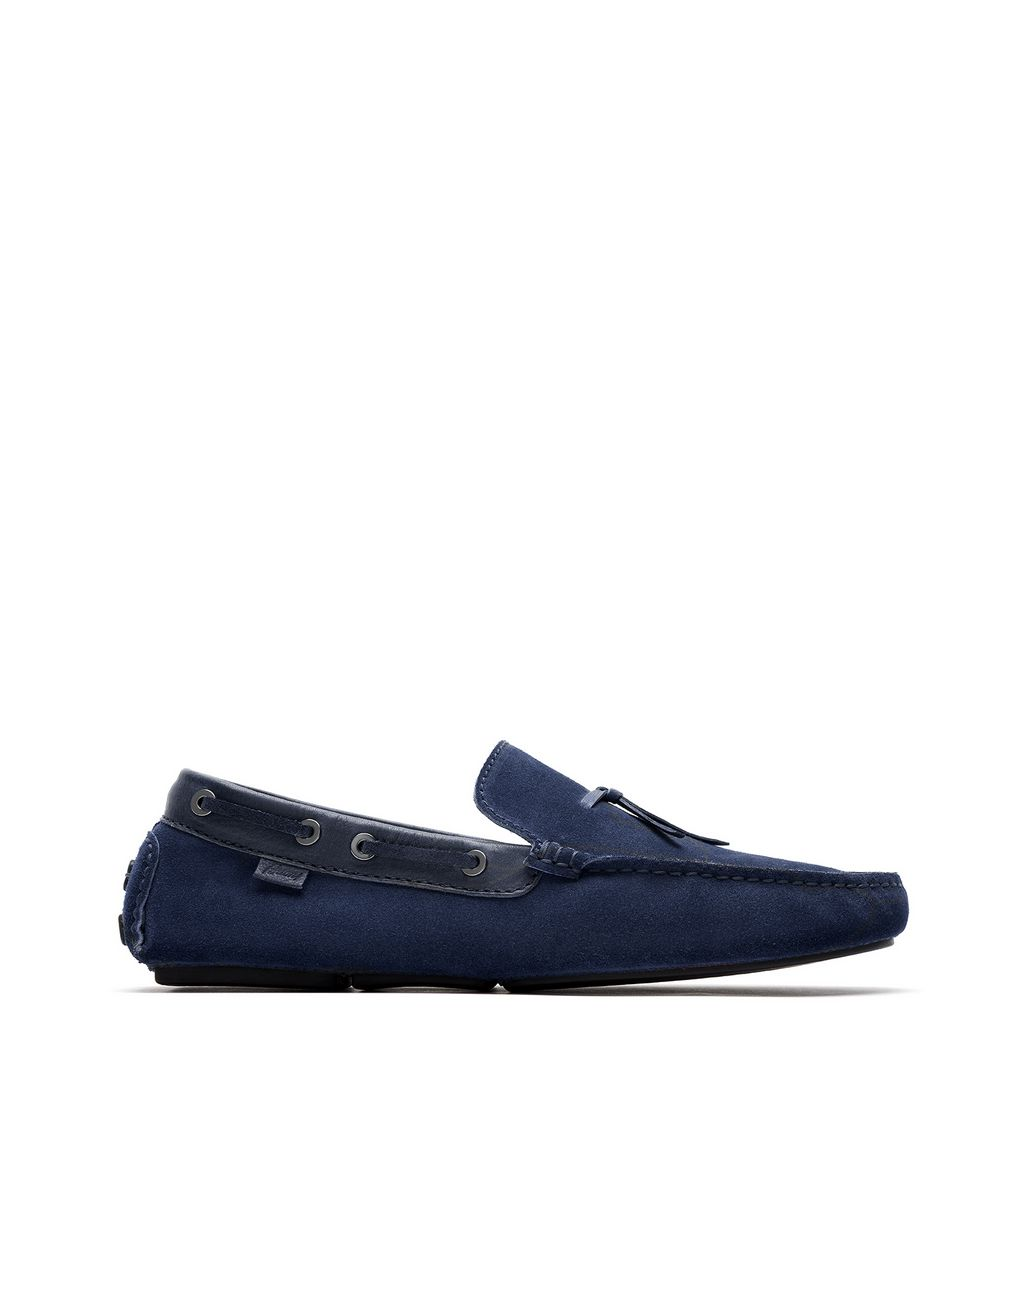 BRIONI Navy-Blue Unlined Calf Suede Loafer Loafers Man f